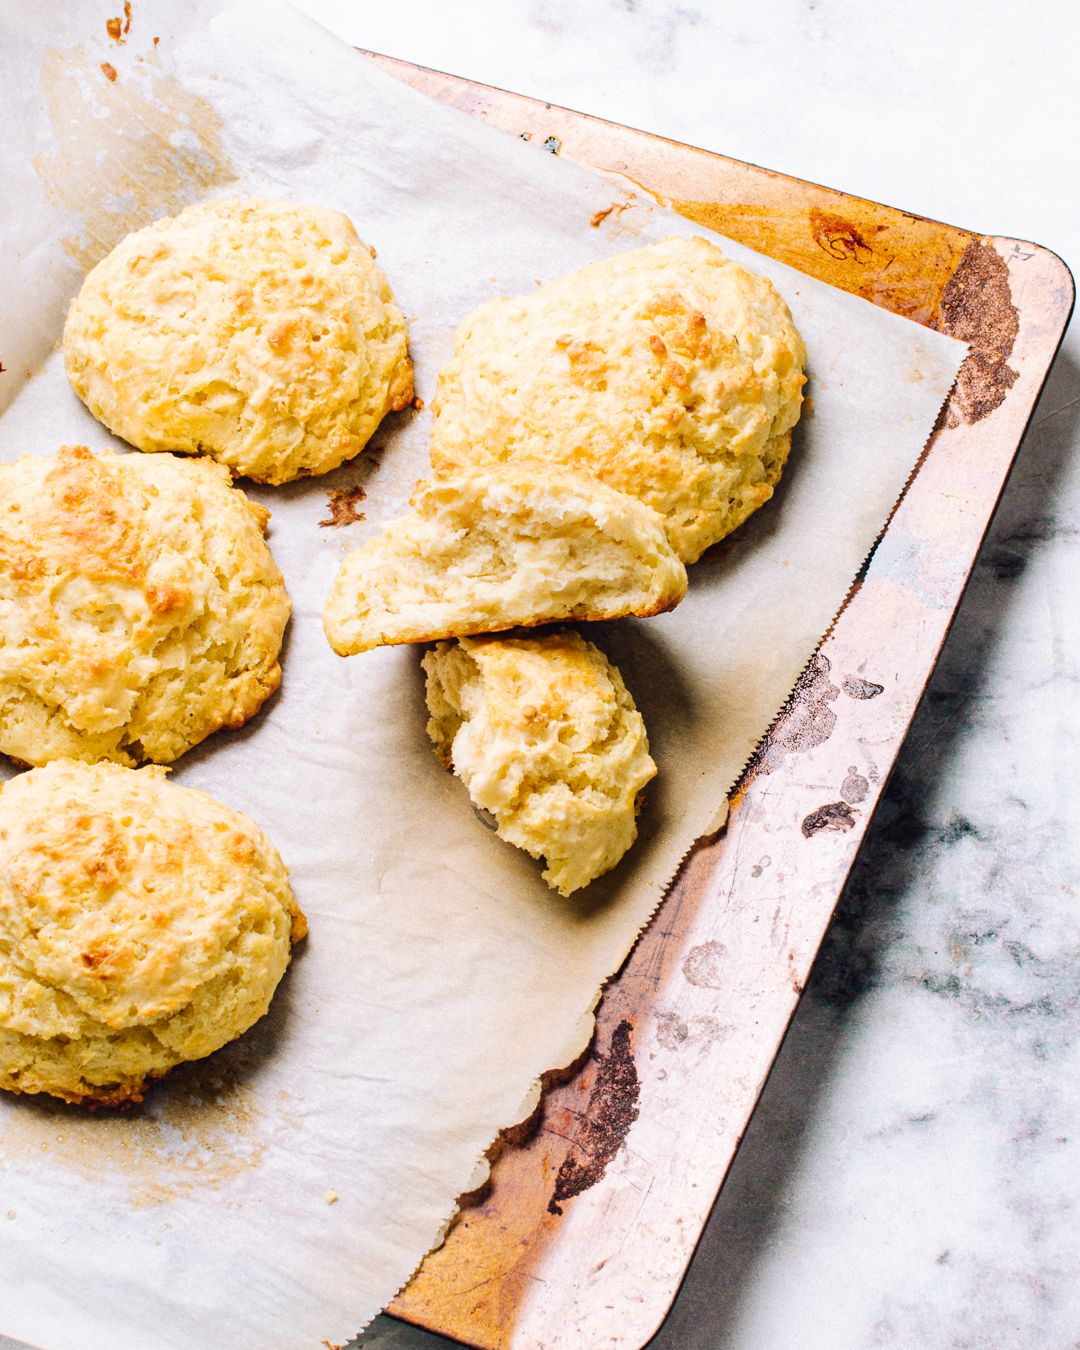 I Have Been Making This Buttermilk Drop Biscuit Recipe Almost Weekly For Years It S A One Bowl Rec In 2020 Drop Biscuits Drop Biscuits Recipe Buttermilk Drop Biscuits